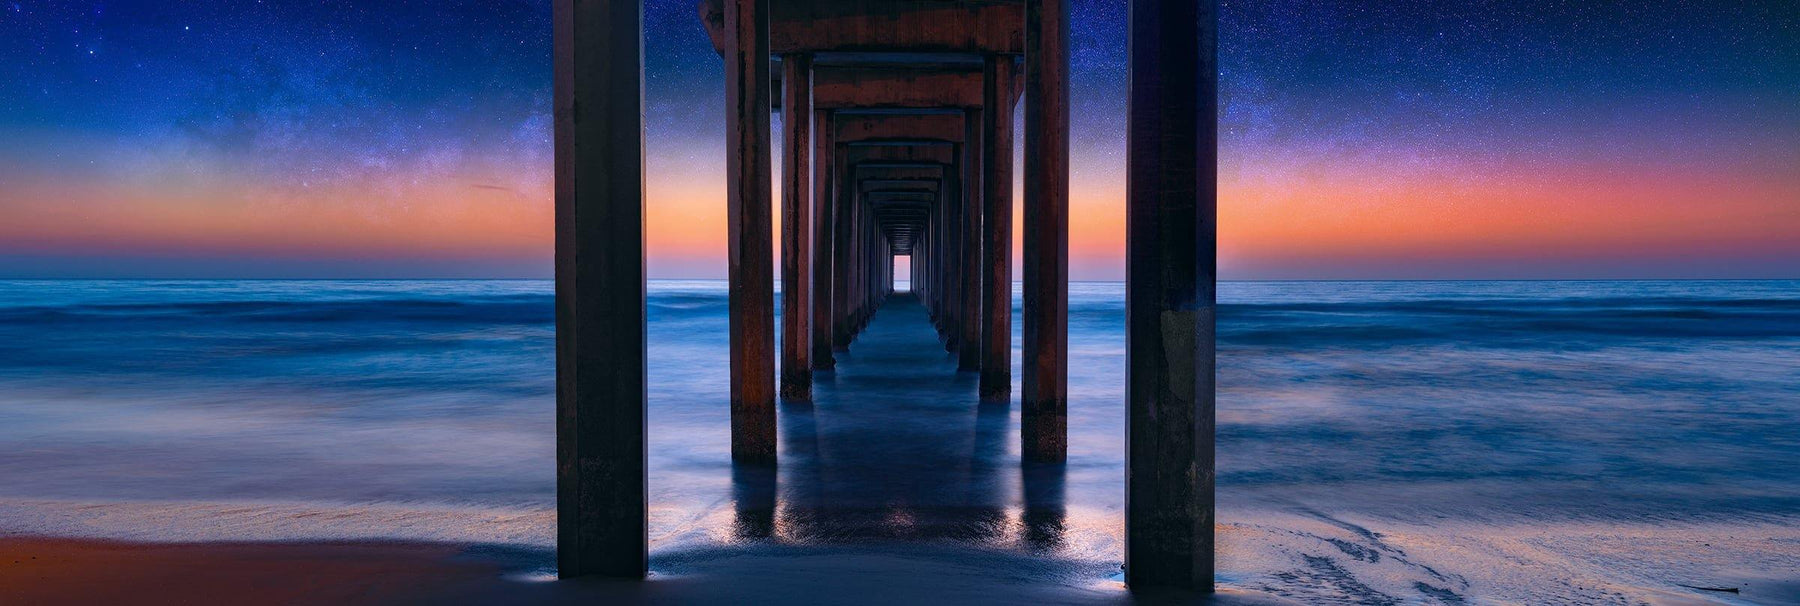 The ocean and Scripps Pier of La Jolla California with the glowing horizon and star filled sky in the background